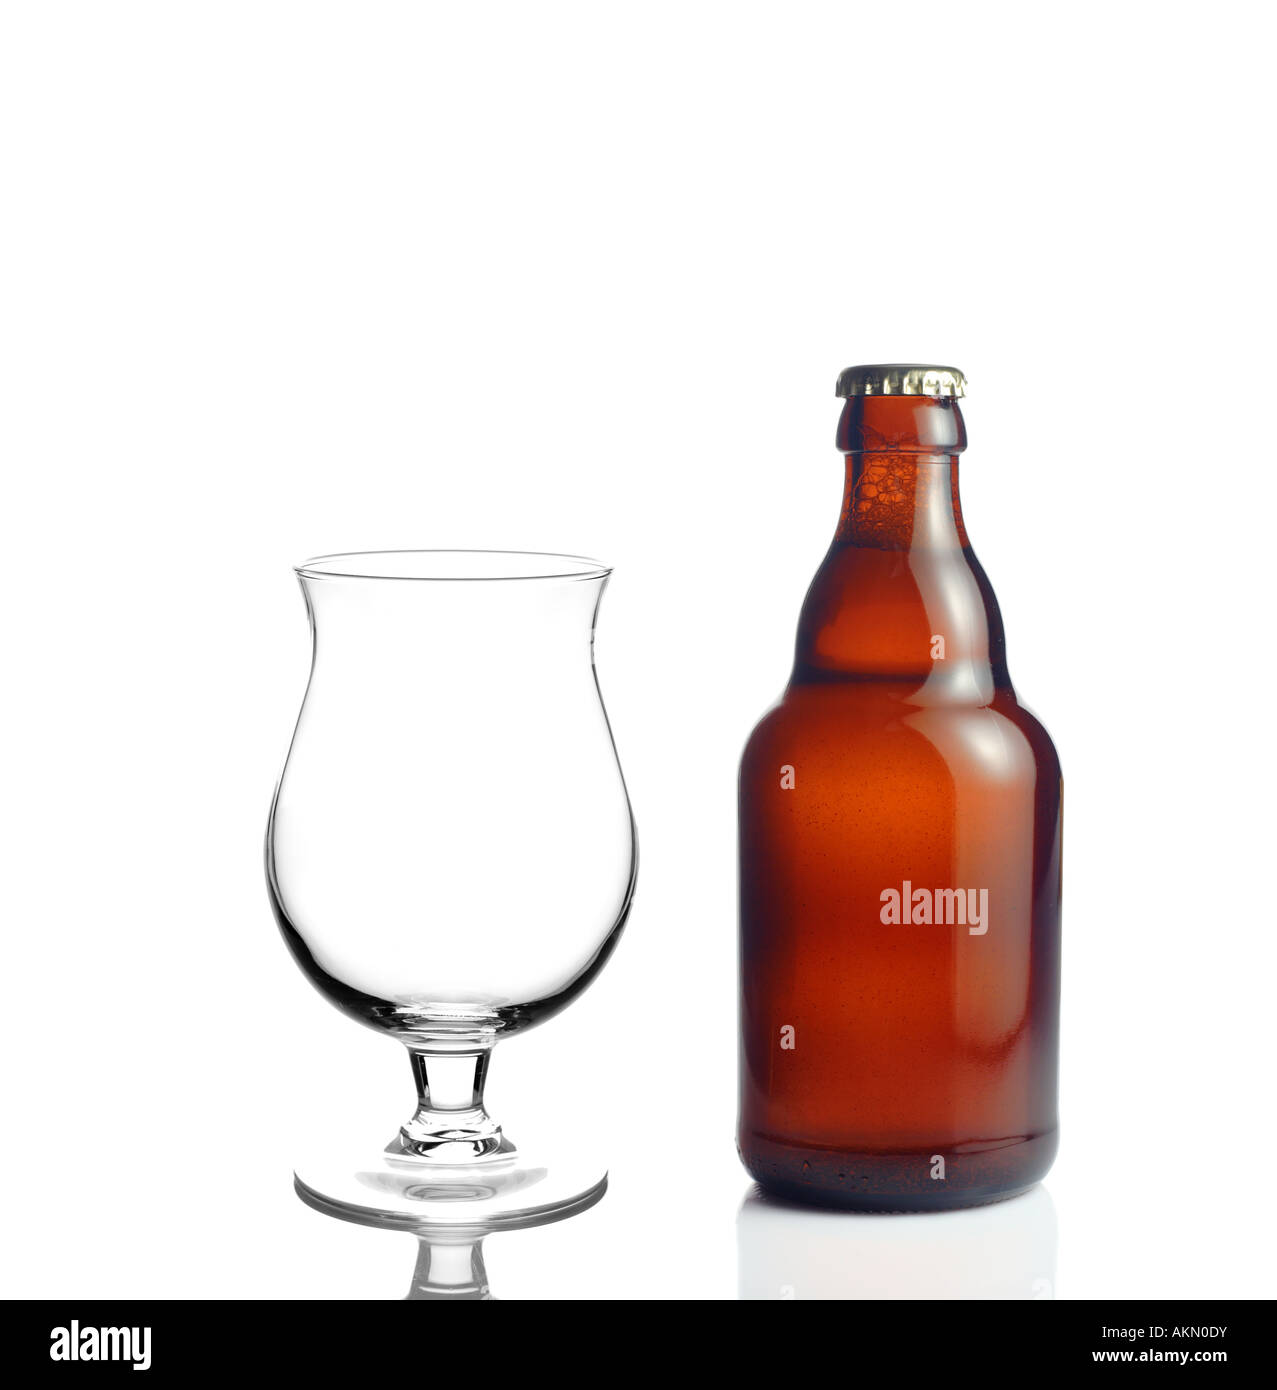 Beer glass and a beer bottle - Stock Image